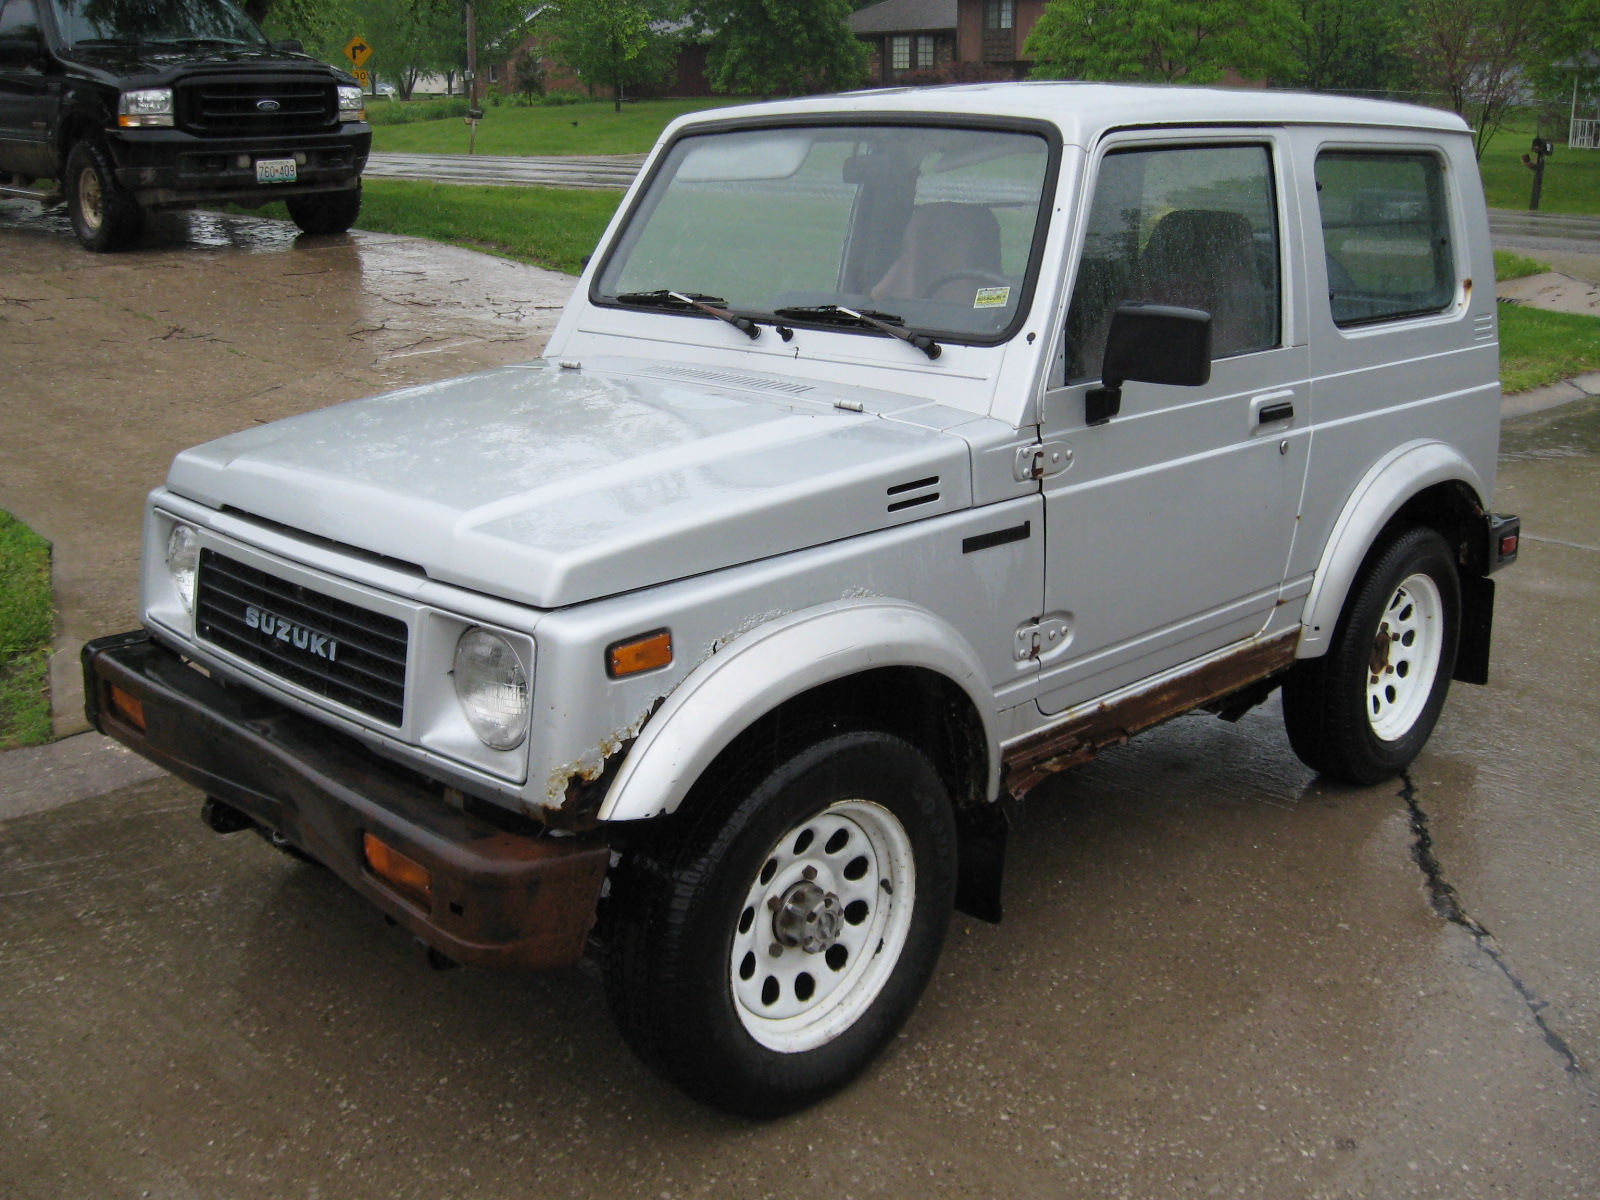 WTB: Looking for a 2 door 4-cyl 4x4 like Suzuki Samurai, or Geo/Chevy  Tracker